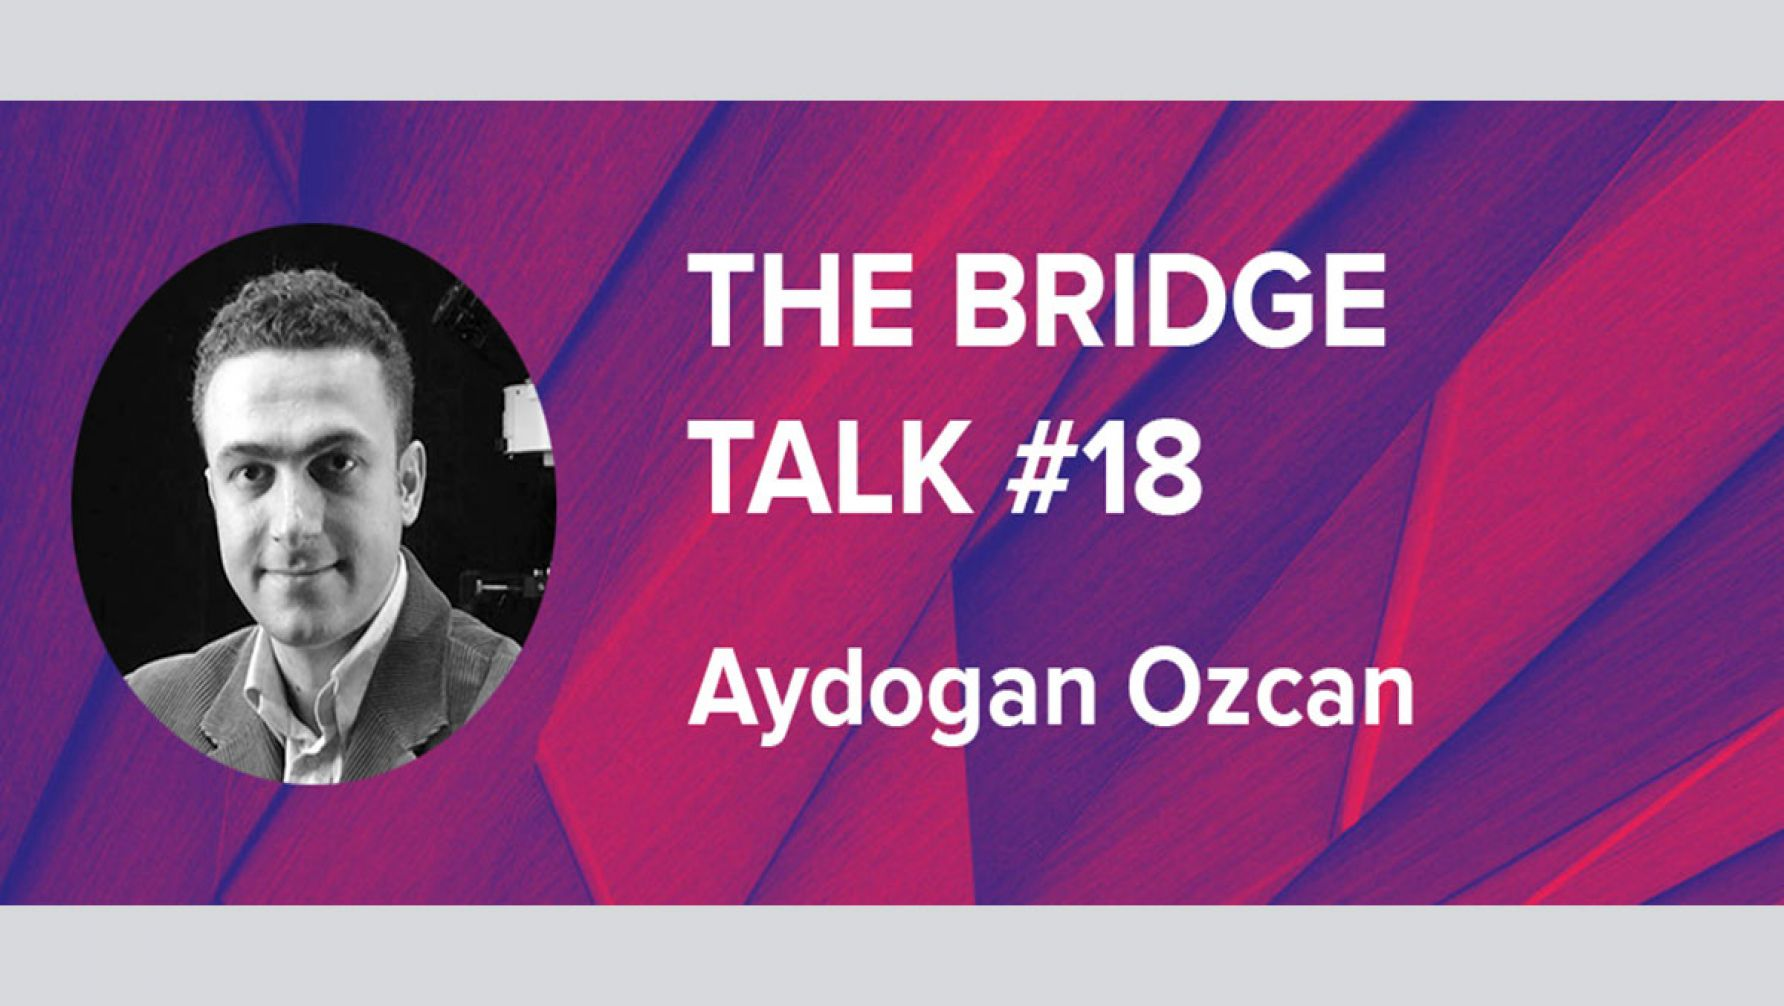 The Bridge Talk #18 - Aydogan Ozcan